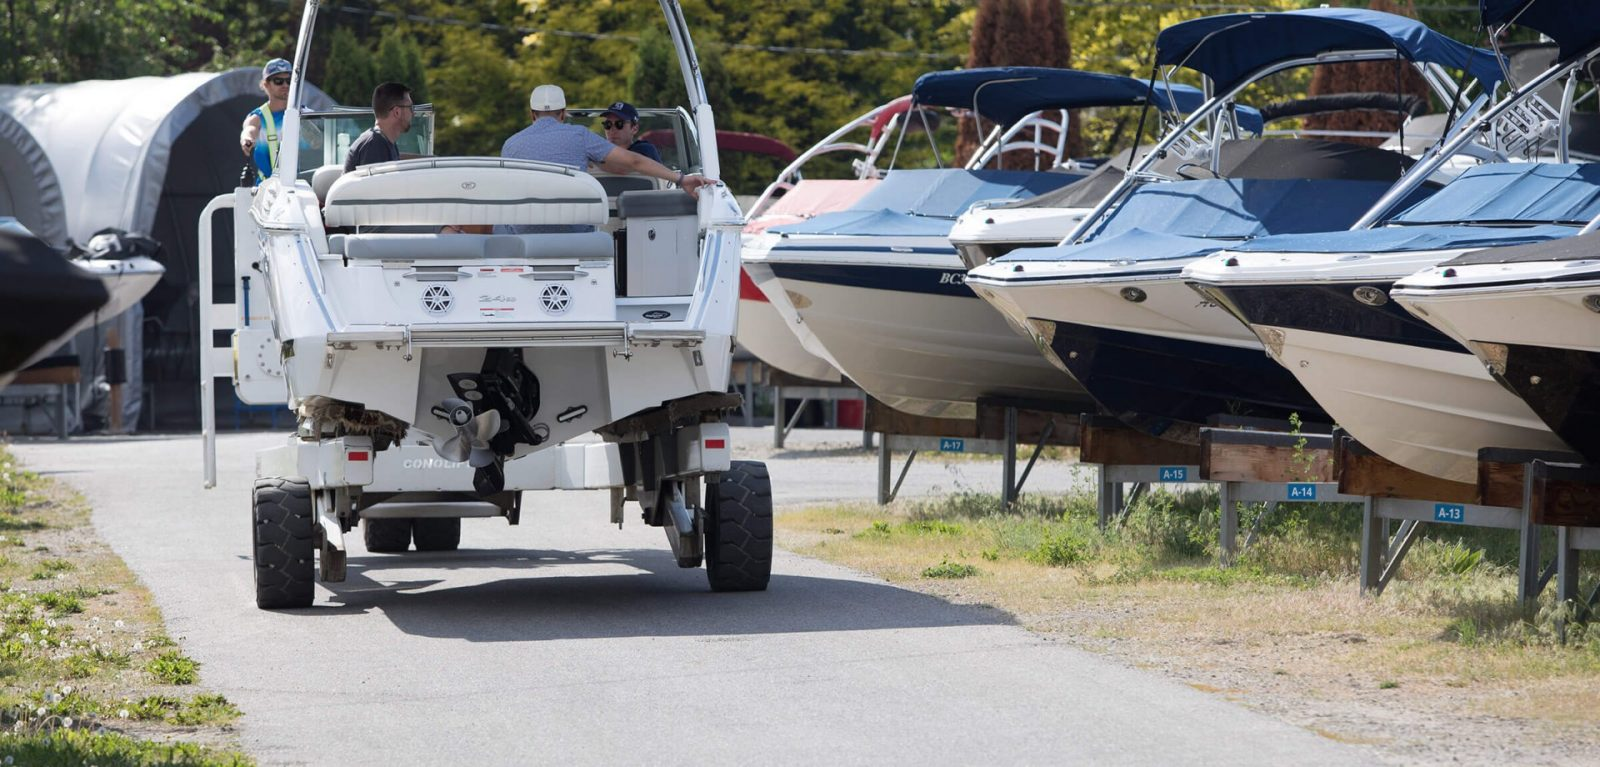 Boat valet services